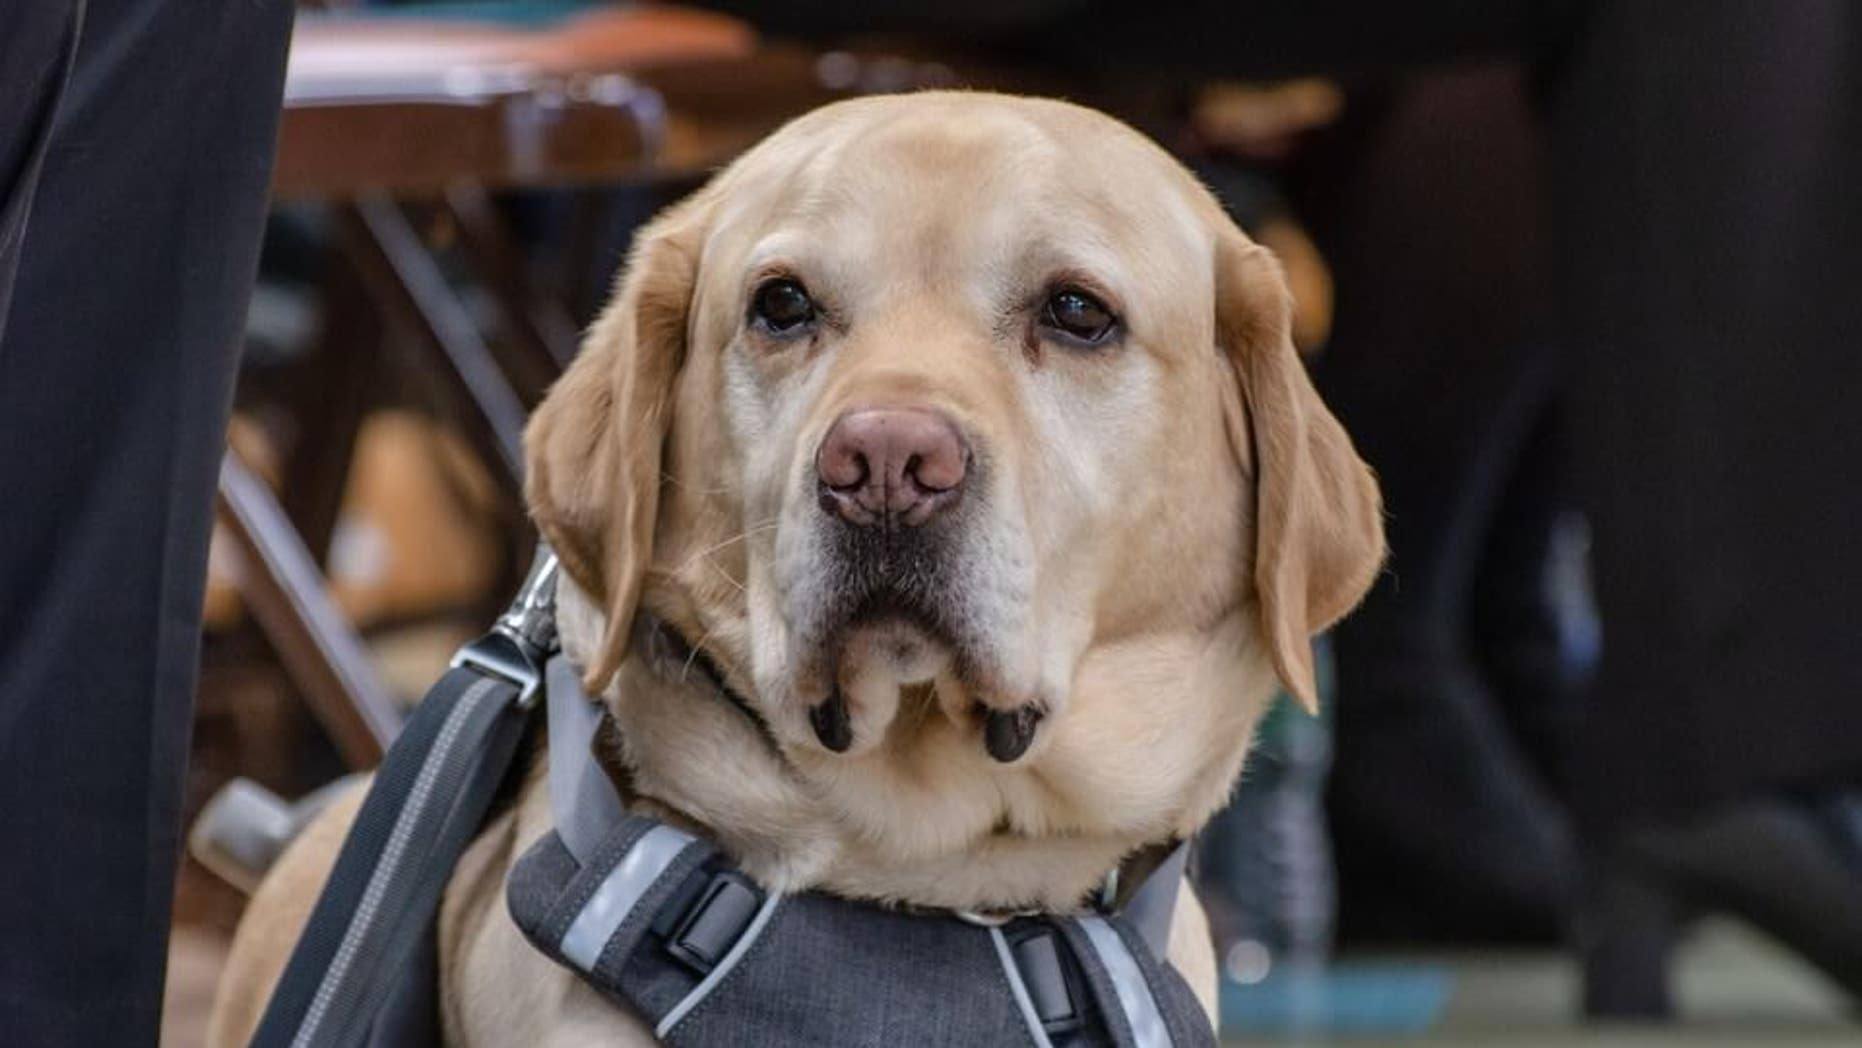 Gus, seen here, will run the NYC Half Marathon alongside Tom Panek, the CEO of Guiding Eyes for the Blind